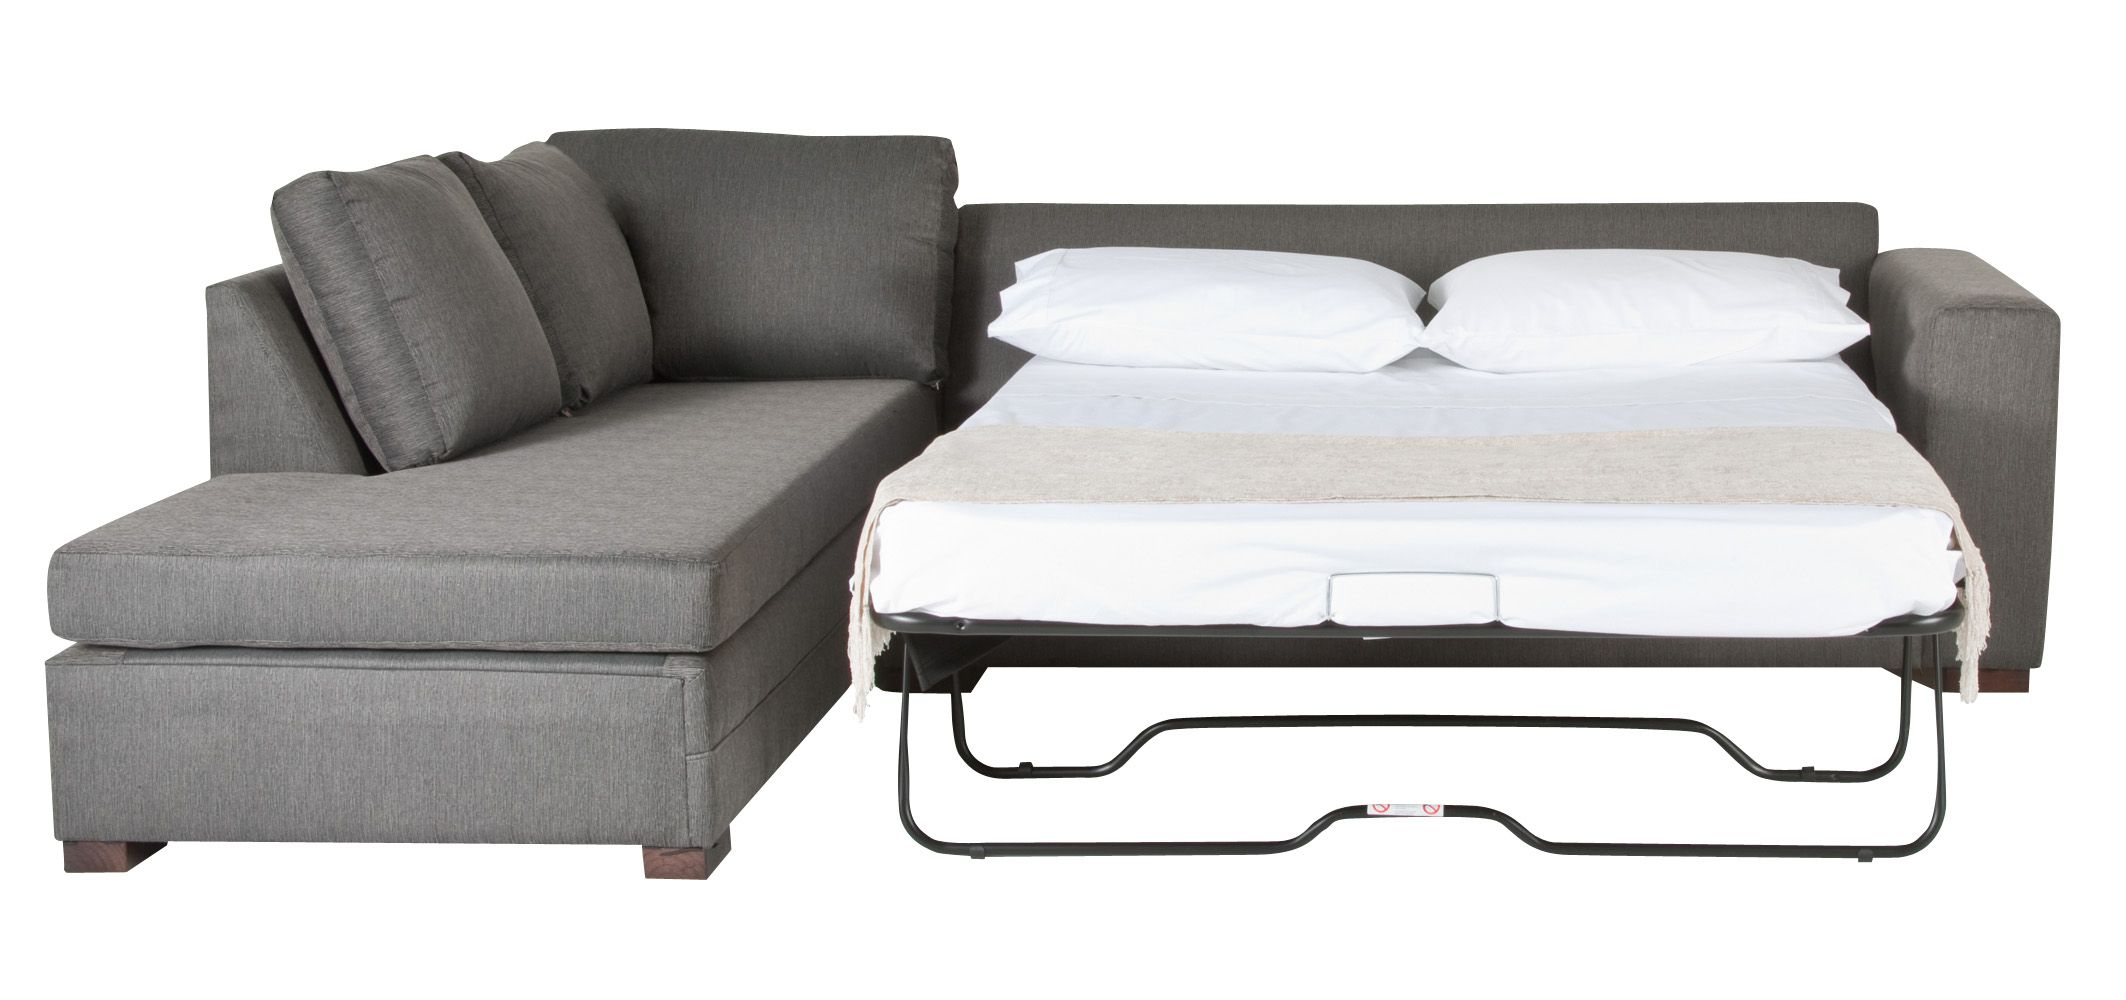 que Gray Fabric Sleeper Couch With Pull Out Bed White